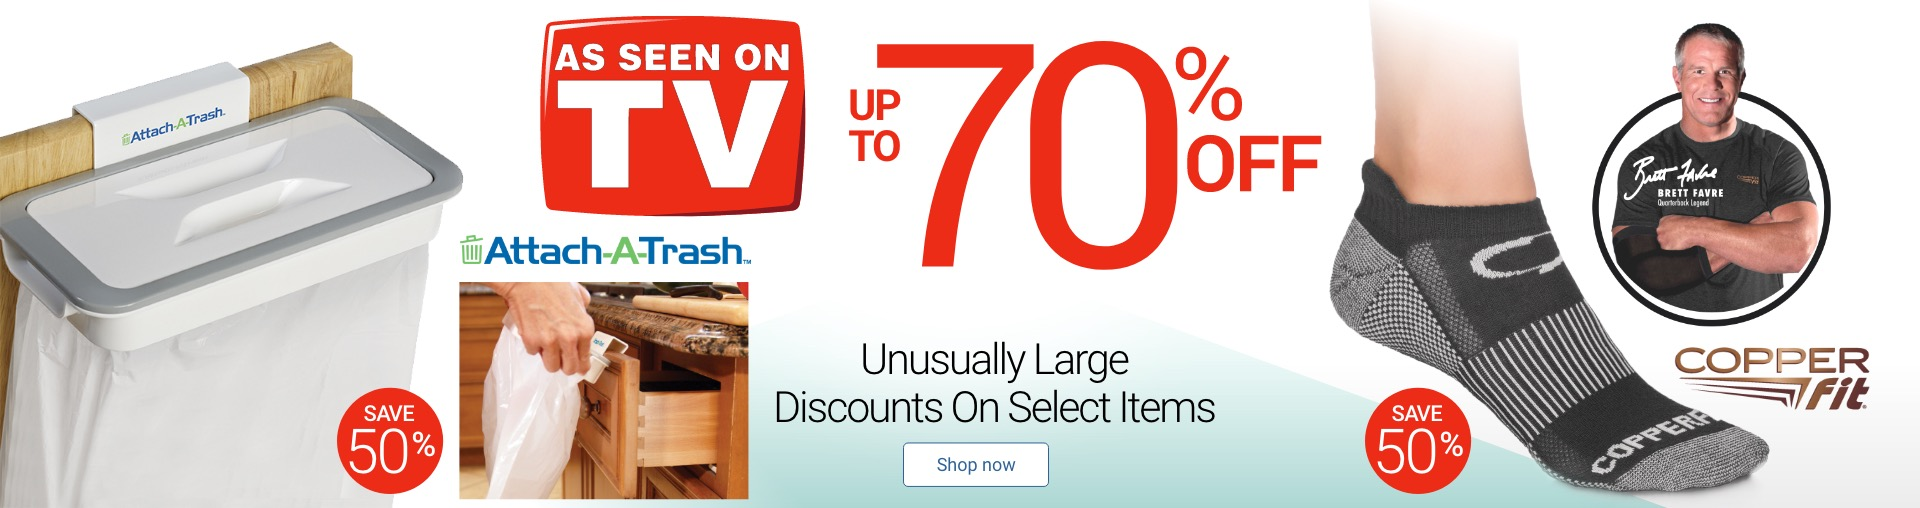 As Seen On TV Up To 70% Off Shop now